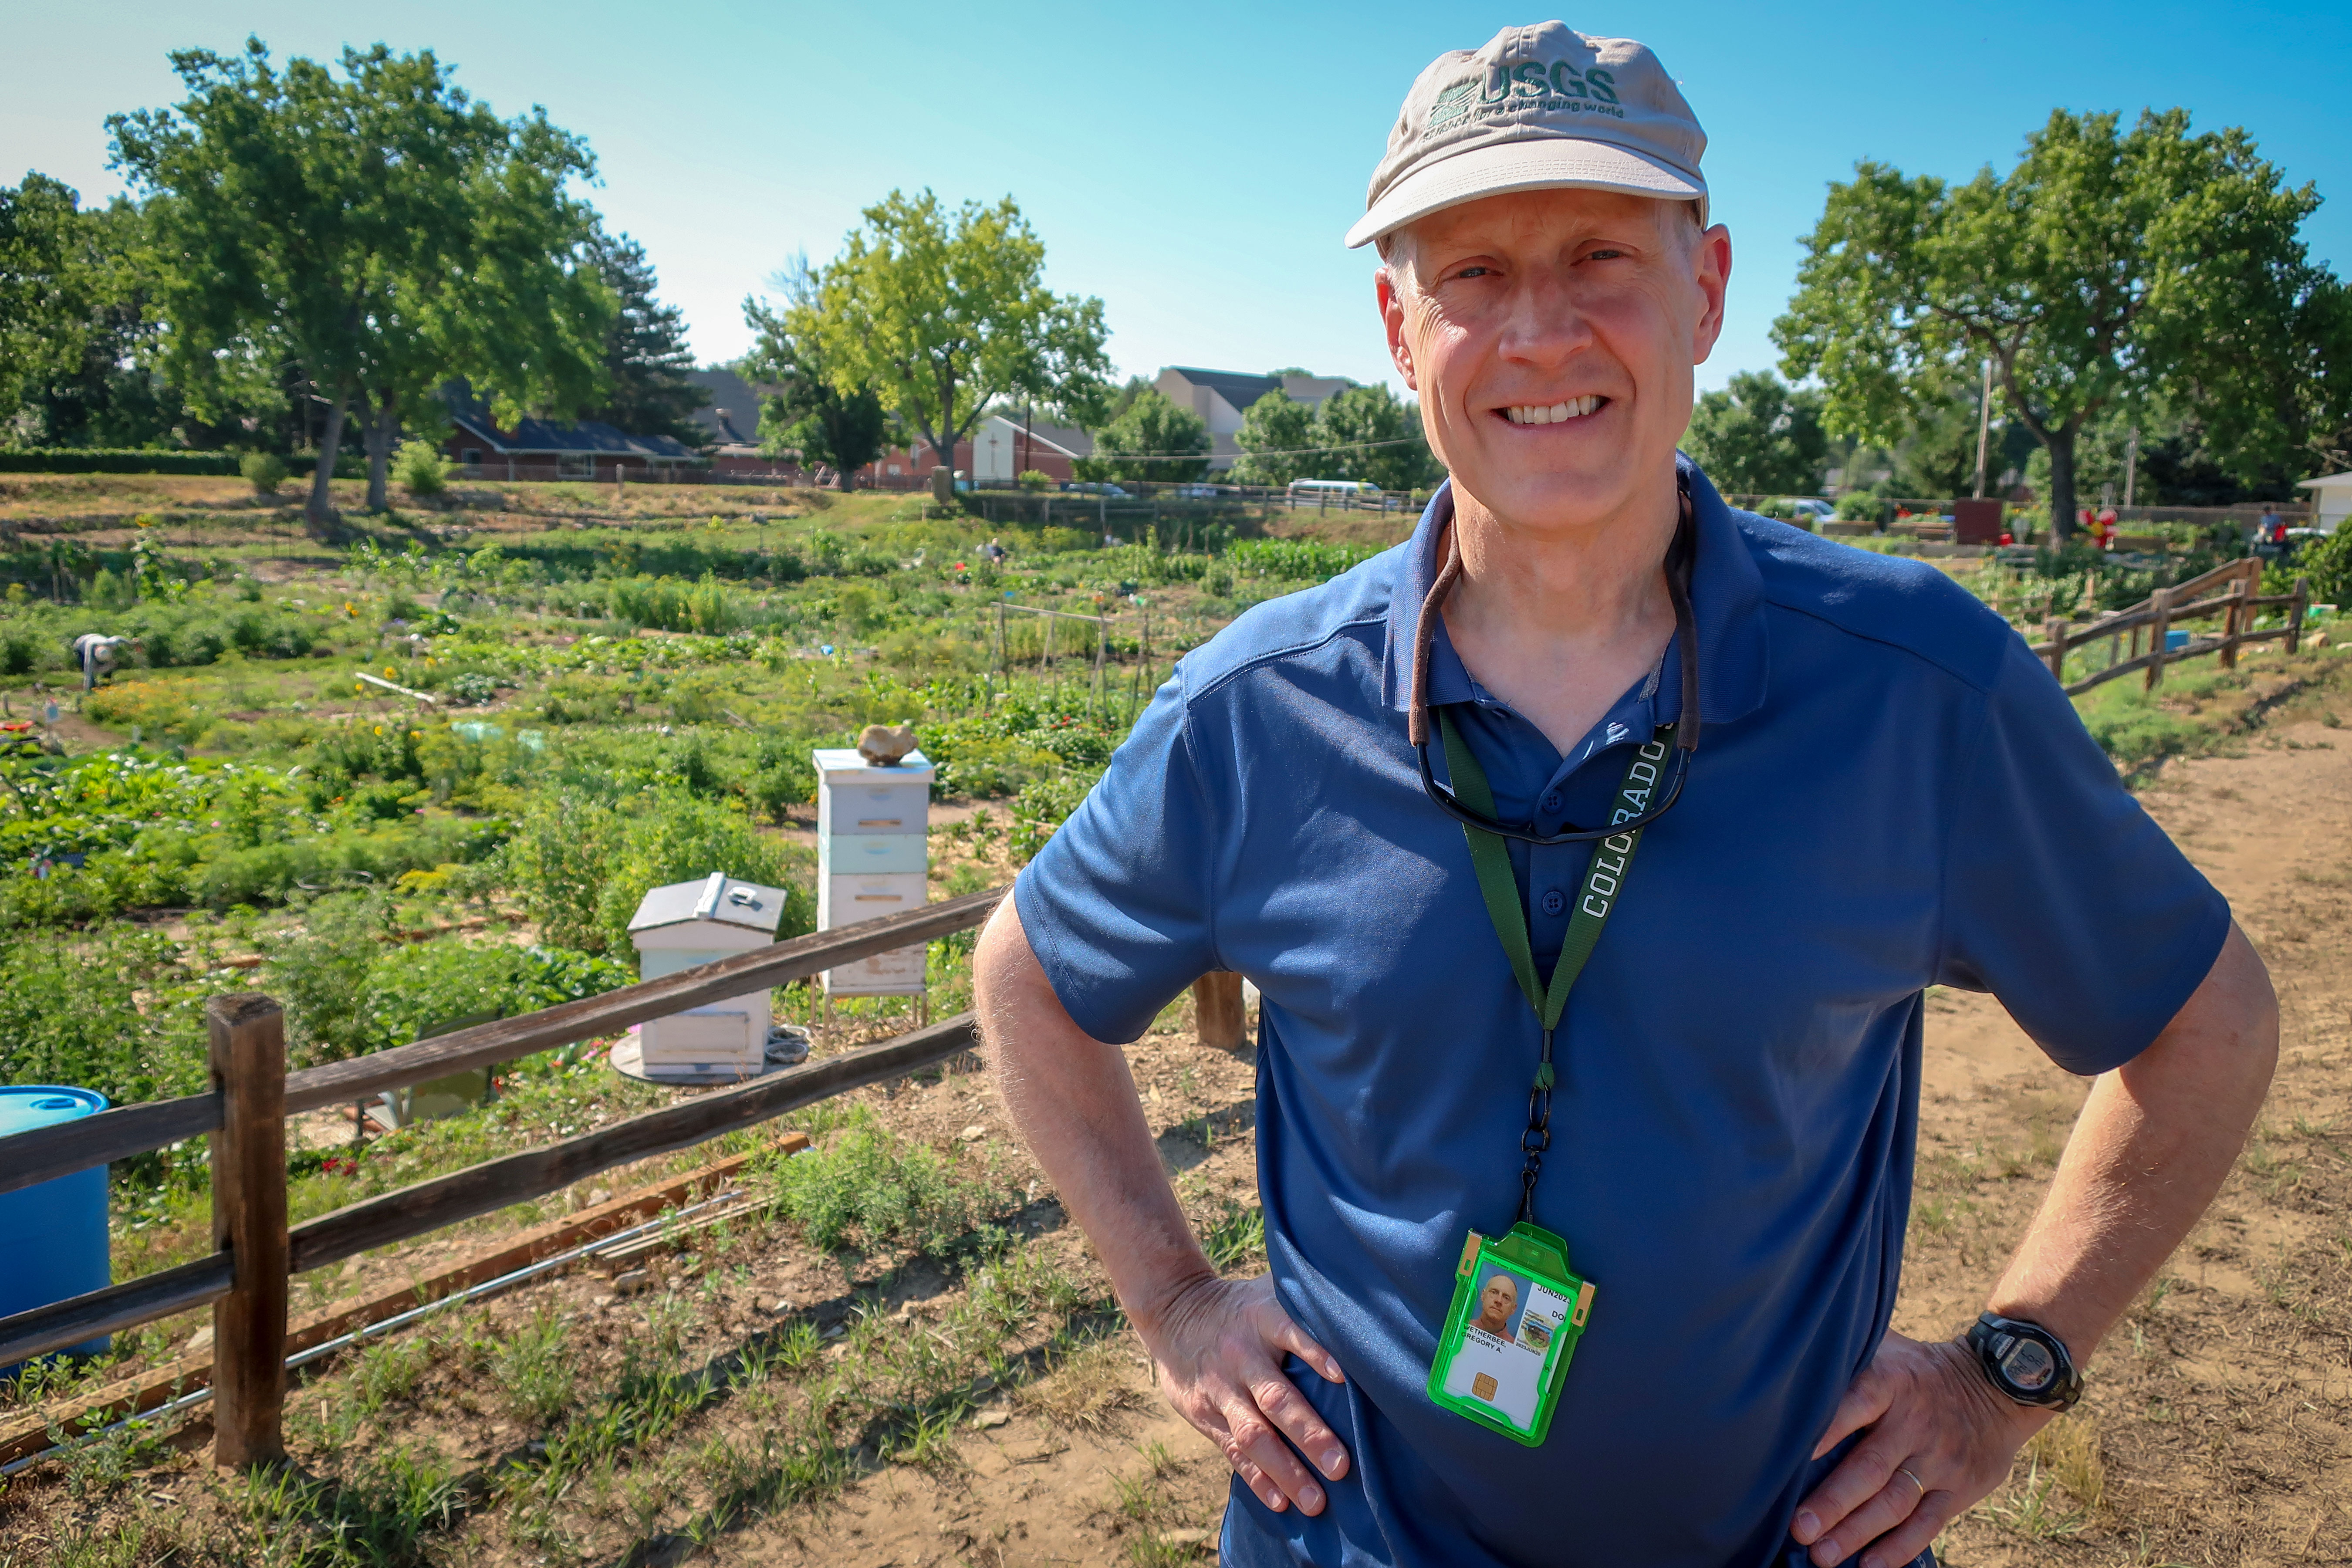 Gregory Wetherbee, a research chemist with the USGS, stands at an urban rainwater collection site at the Arvada Community Gardens.